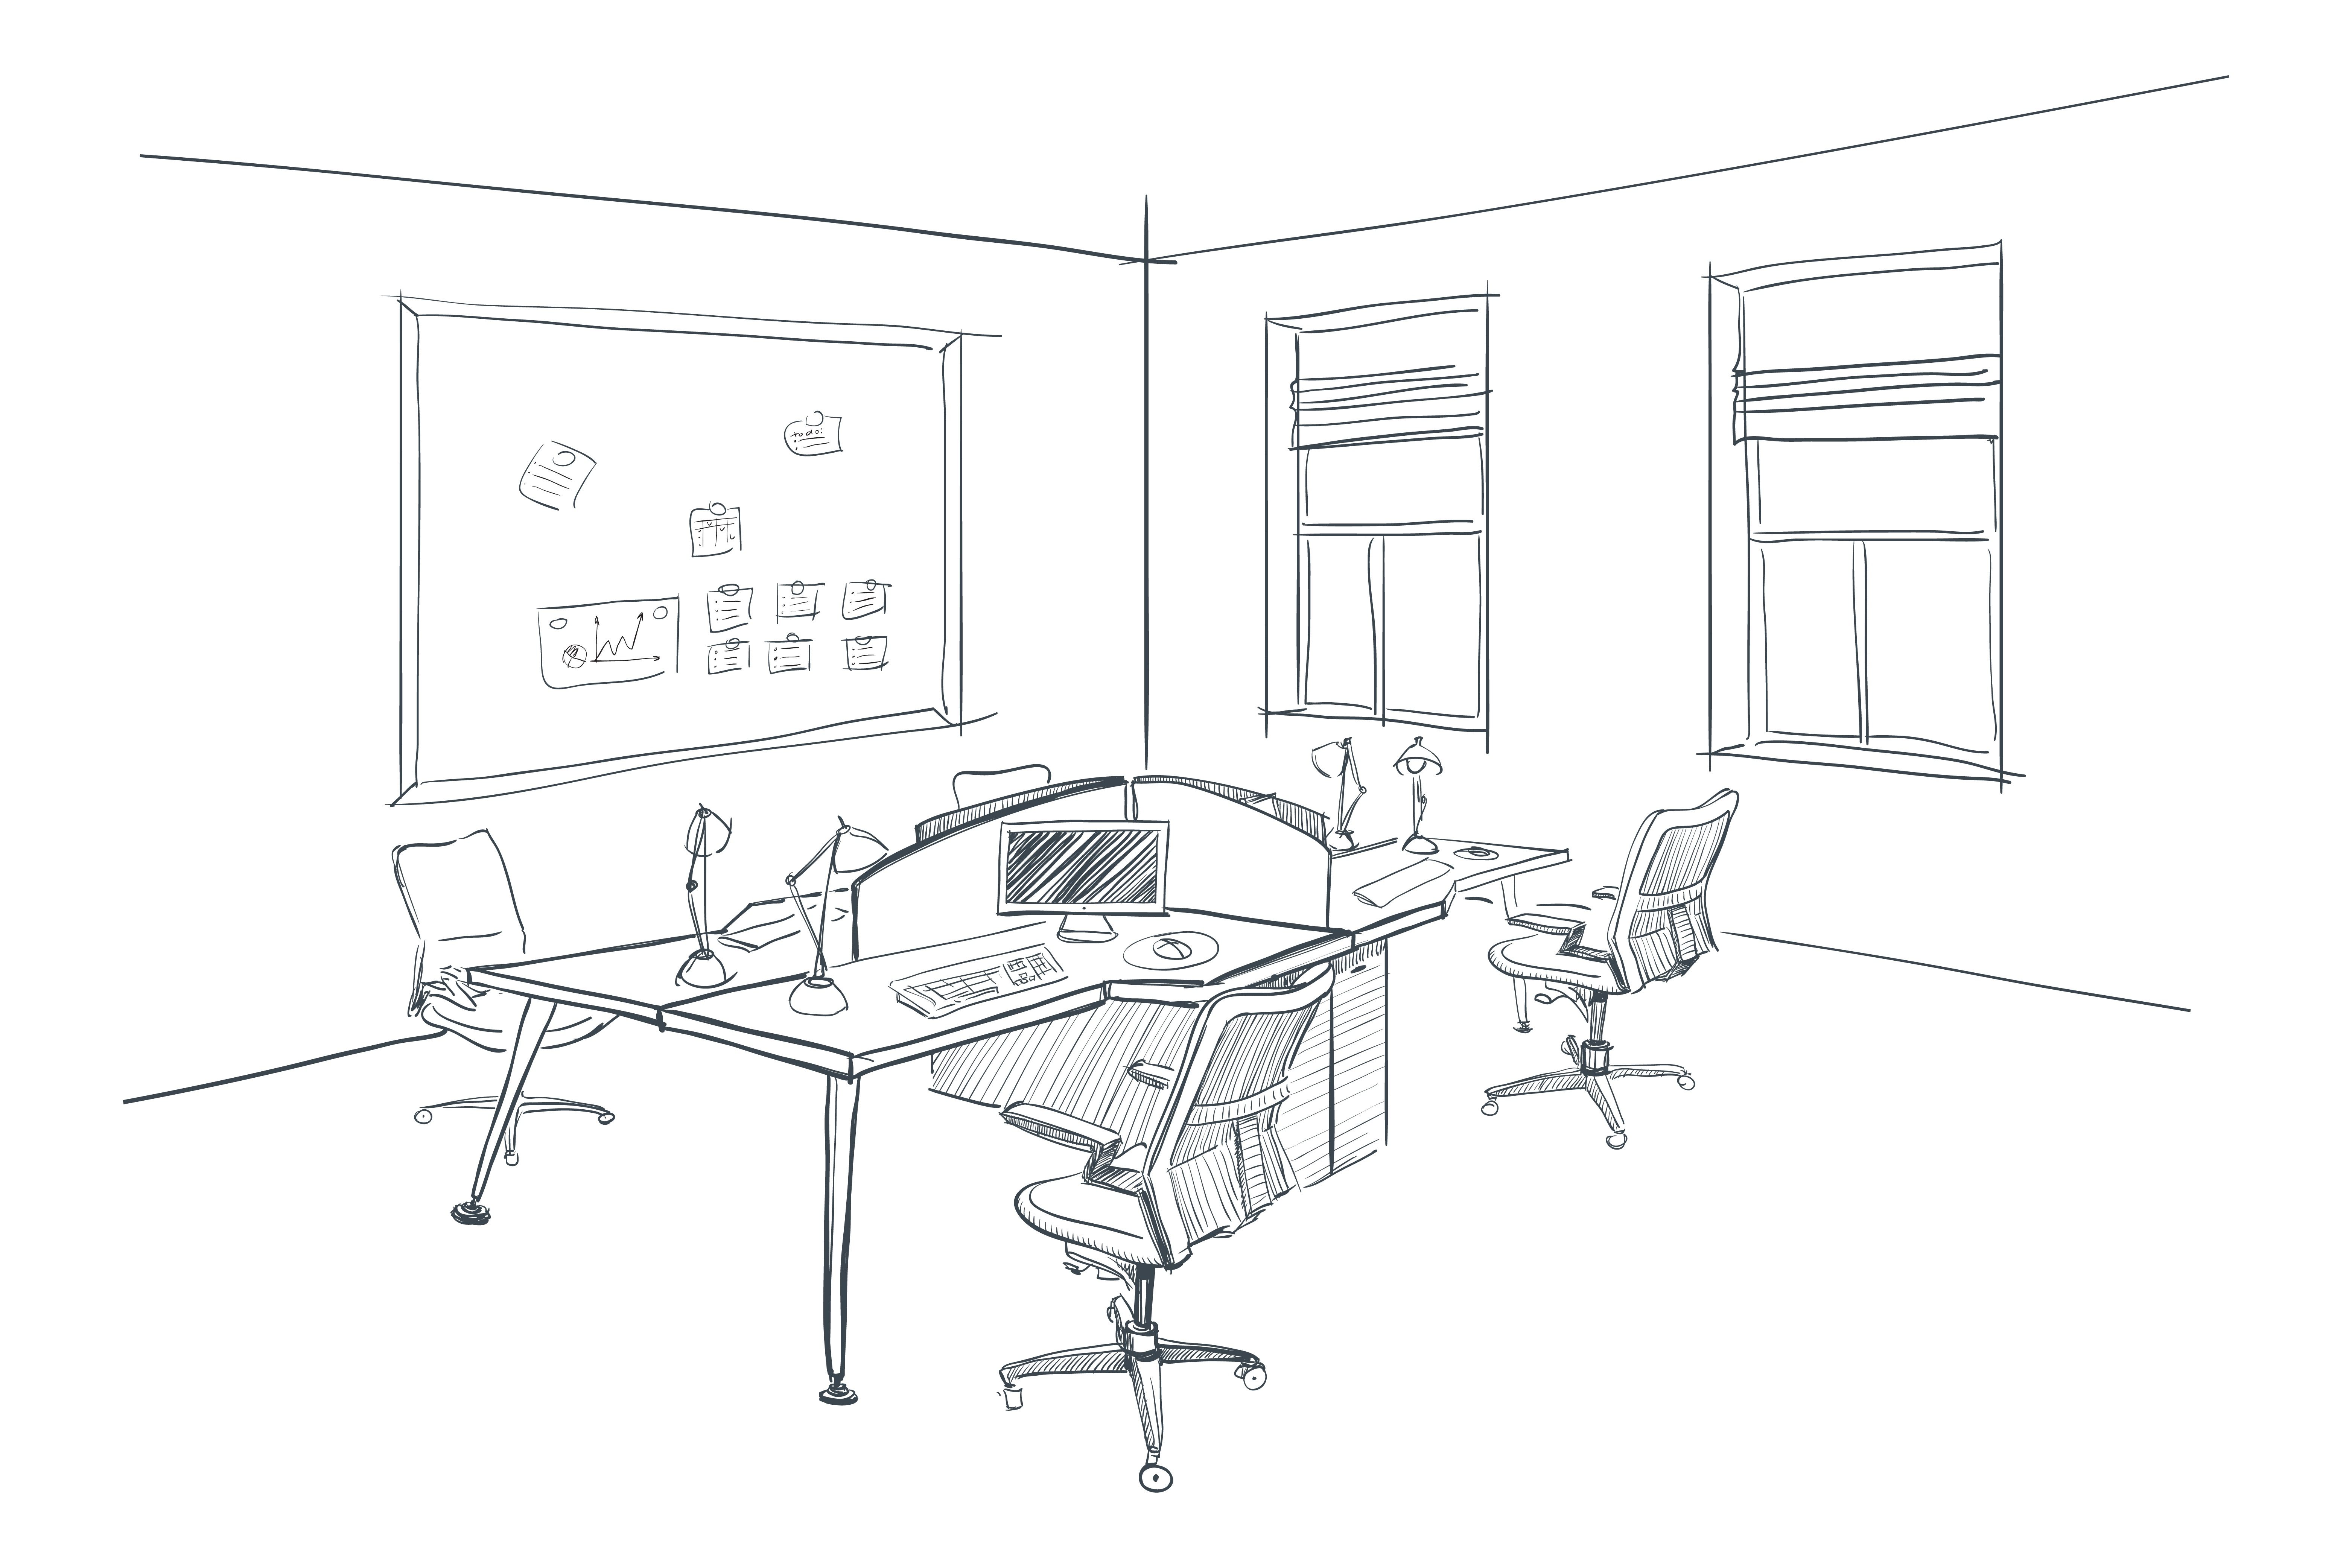 Conference_Room_Office_Space.jpg